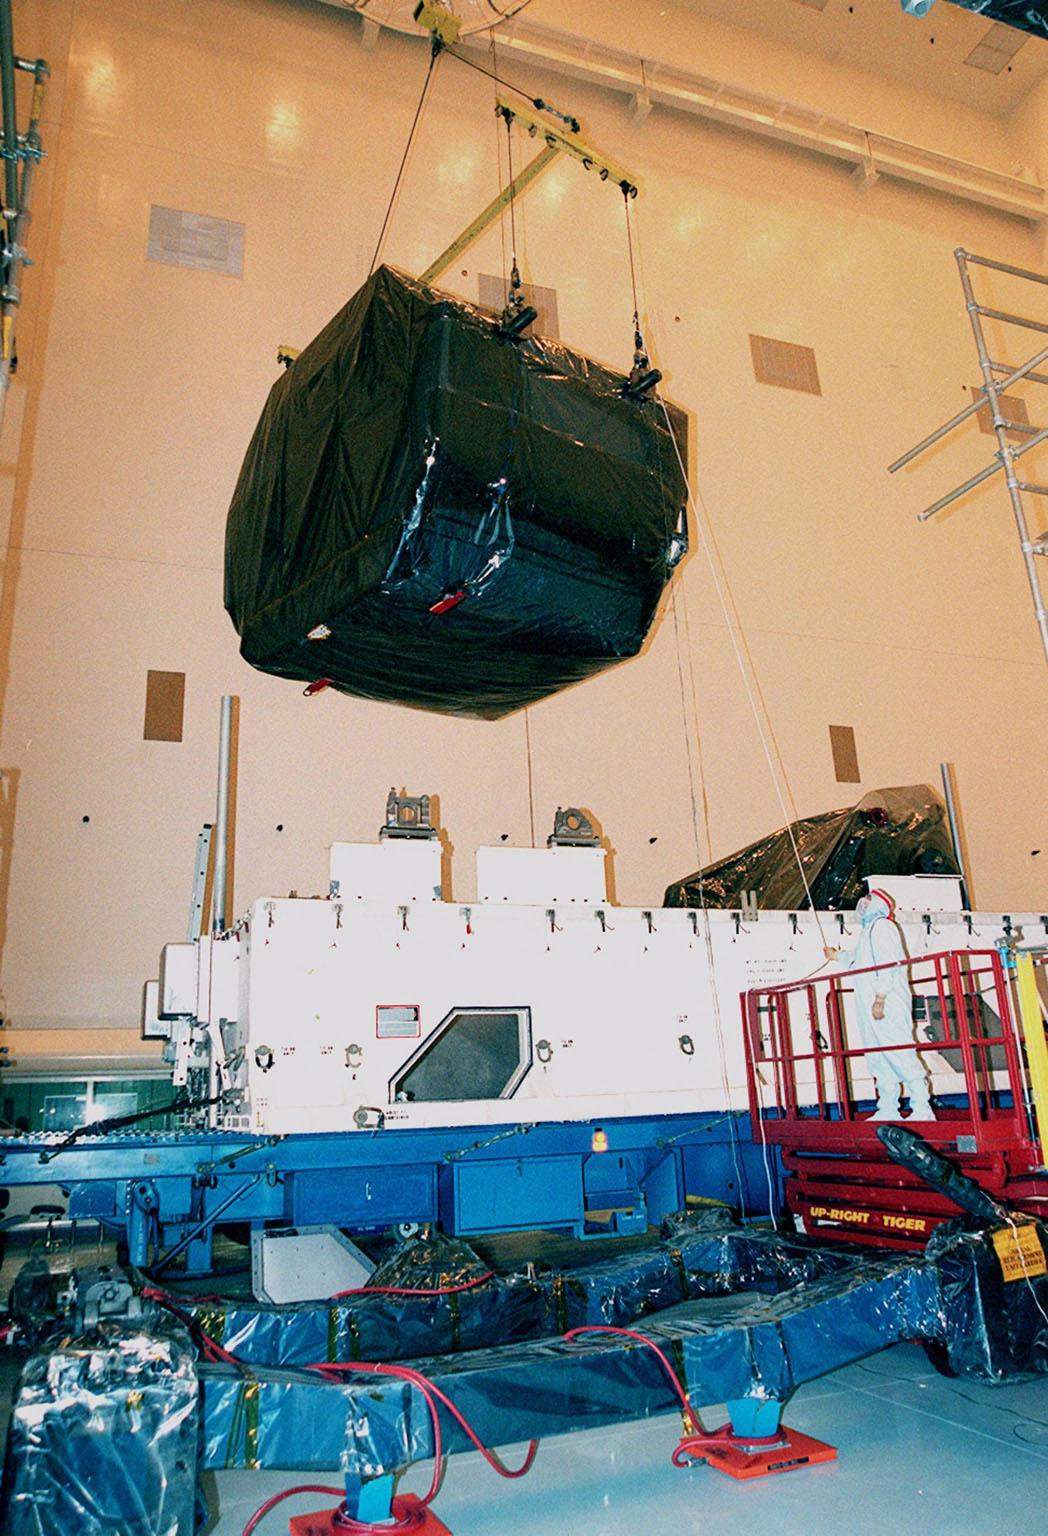 """In the Payload Hazardous Servicing Facility (PHSF), a crane lifts equipment for mission STS-103 out of its shipping container to move it to a workstand. The equipment is the first part of payload flight hardware for the third Hubble Space Telescope Servicing Mission (SM-3A). The hardware will undergo final testing and integration of payload elements in the PHSF. Mission STS-103 is a """"call-up"""" mission which is being planned due to the need to replace portions of the Hubble's pointing system, the gyros, which have begun to fail. Although Hubble is operating normally and conducting its scientific observations, only three of its six gyroscopes are working properly. The gyroscopes allow the telescope to point at stars, galaxies and planets. The STS-103 crew will not only replace gyroscopes, it will also replace a Fine Guidance Sensor and an older computer with a new enhanced model, an older data tape recorder with a solid state digital recorder, a failed spare transmitter with a new one, and degraded insulation on the telescope with new thermal insulation. The crew will also install a Battery Voltage/Temperature Improvement Kit to protect the spacecraft batteries from overcharging and overheating when the telescope goes into a safe mode. Launch of STS-103 is currently targeted for Oct. 14 but the date is under review"""